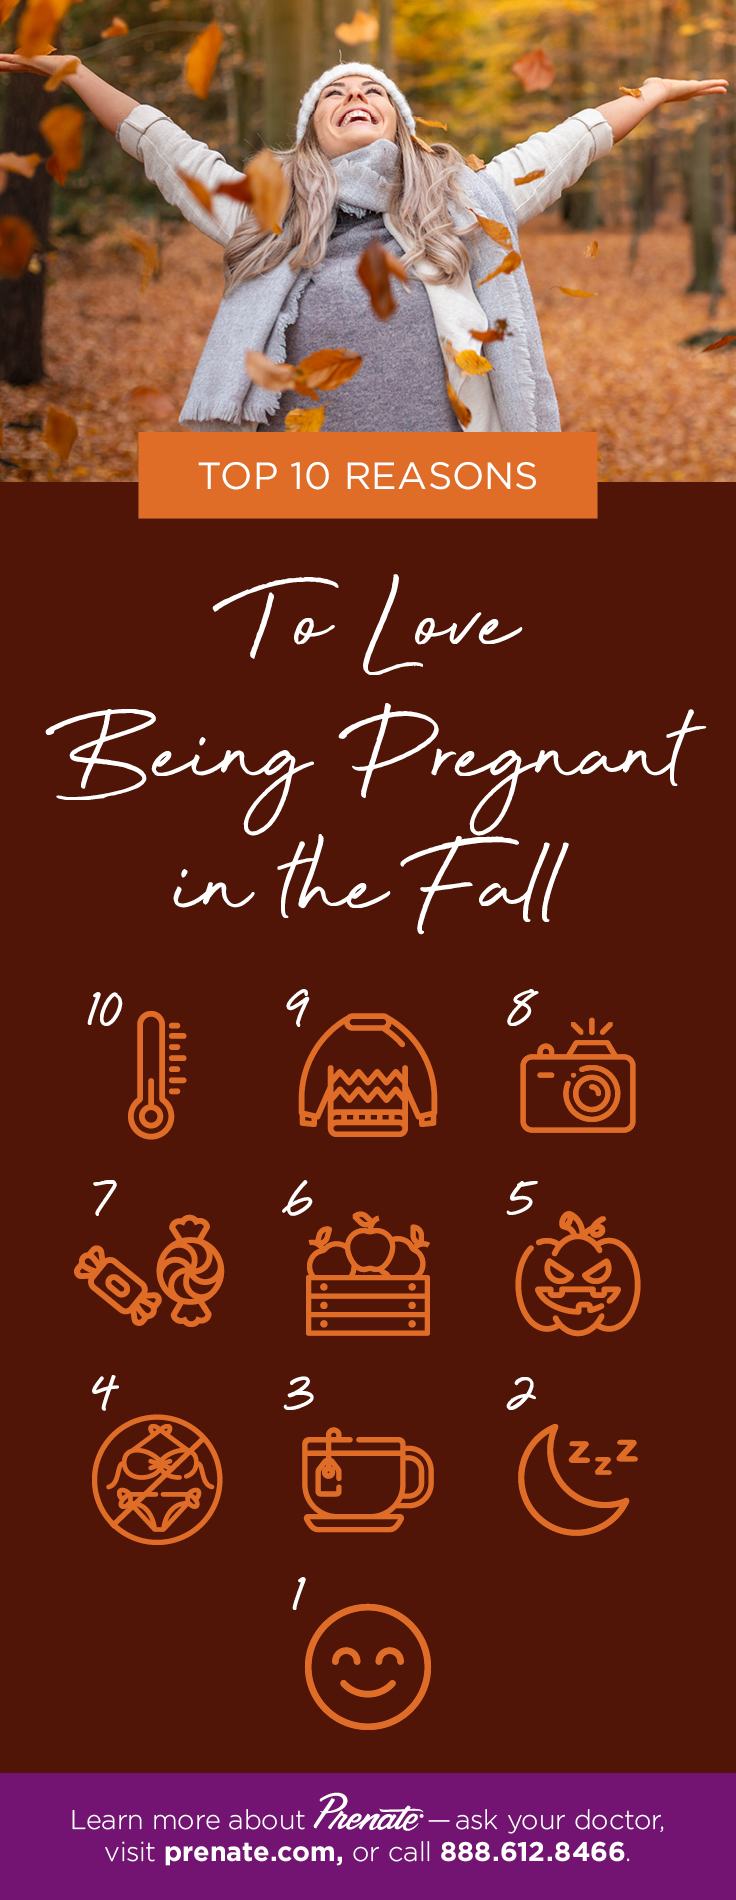 Top 10 Being Pregnant in Fall graphic